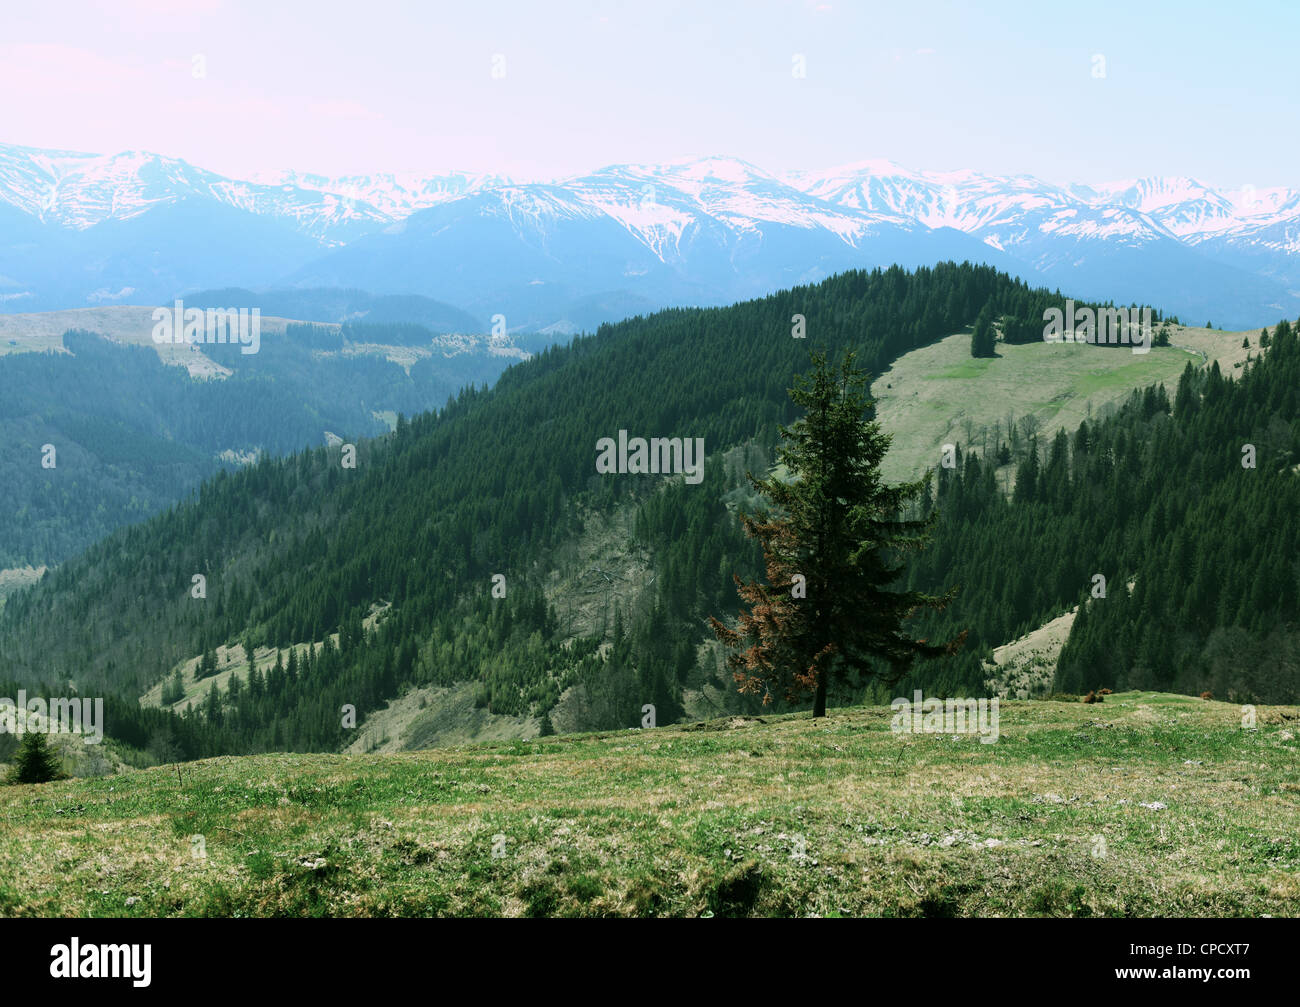 The Lonely Pine Tree and the View for the Montenegrin Ridge in snow, Carpathians, Ukraine Stock Photo